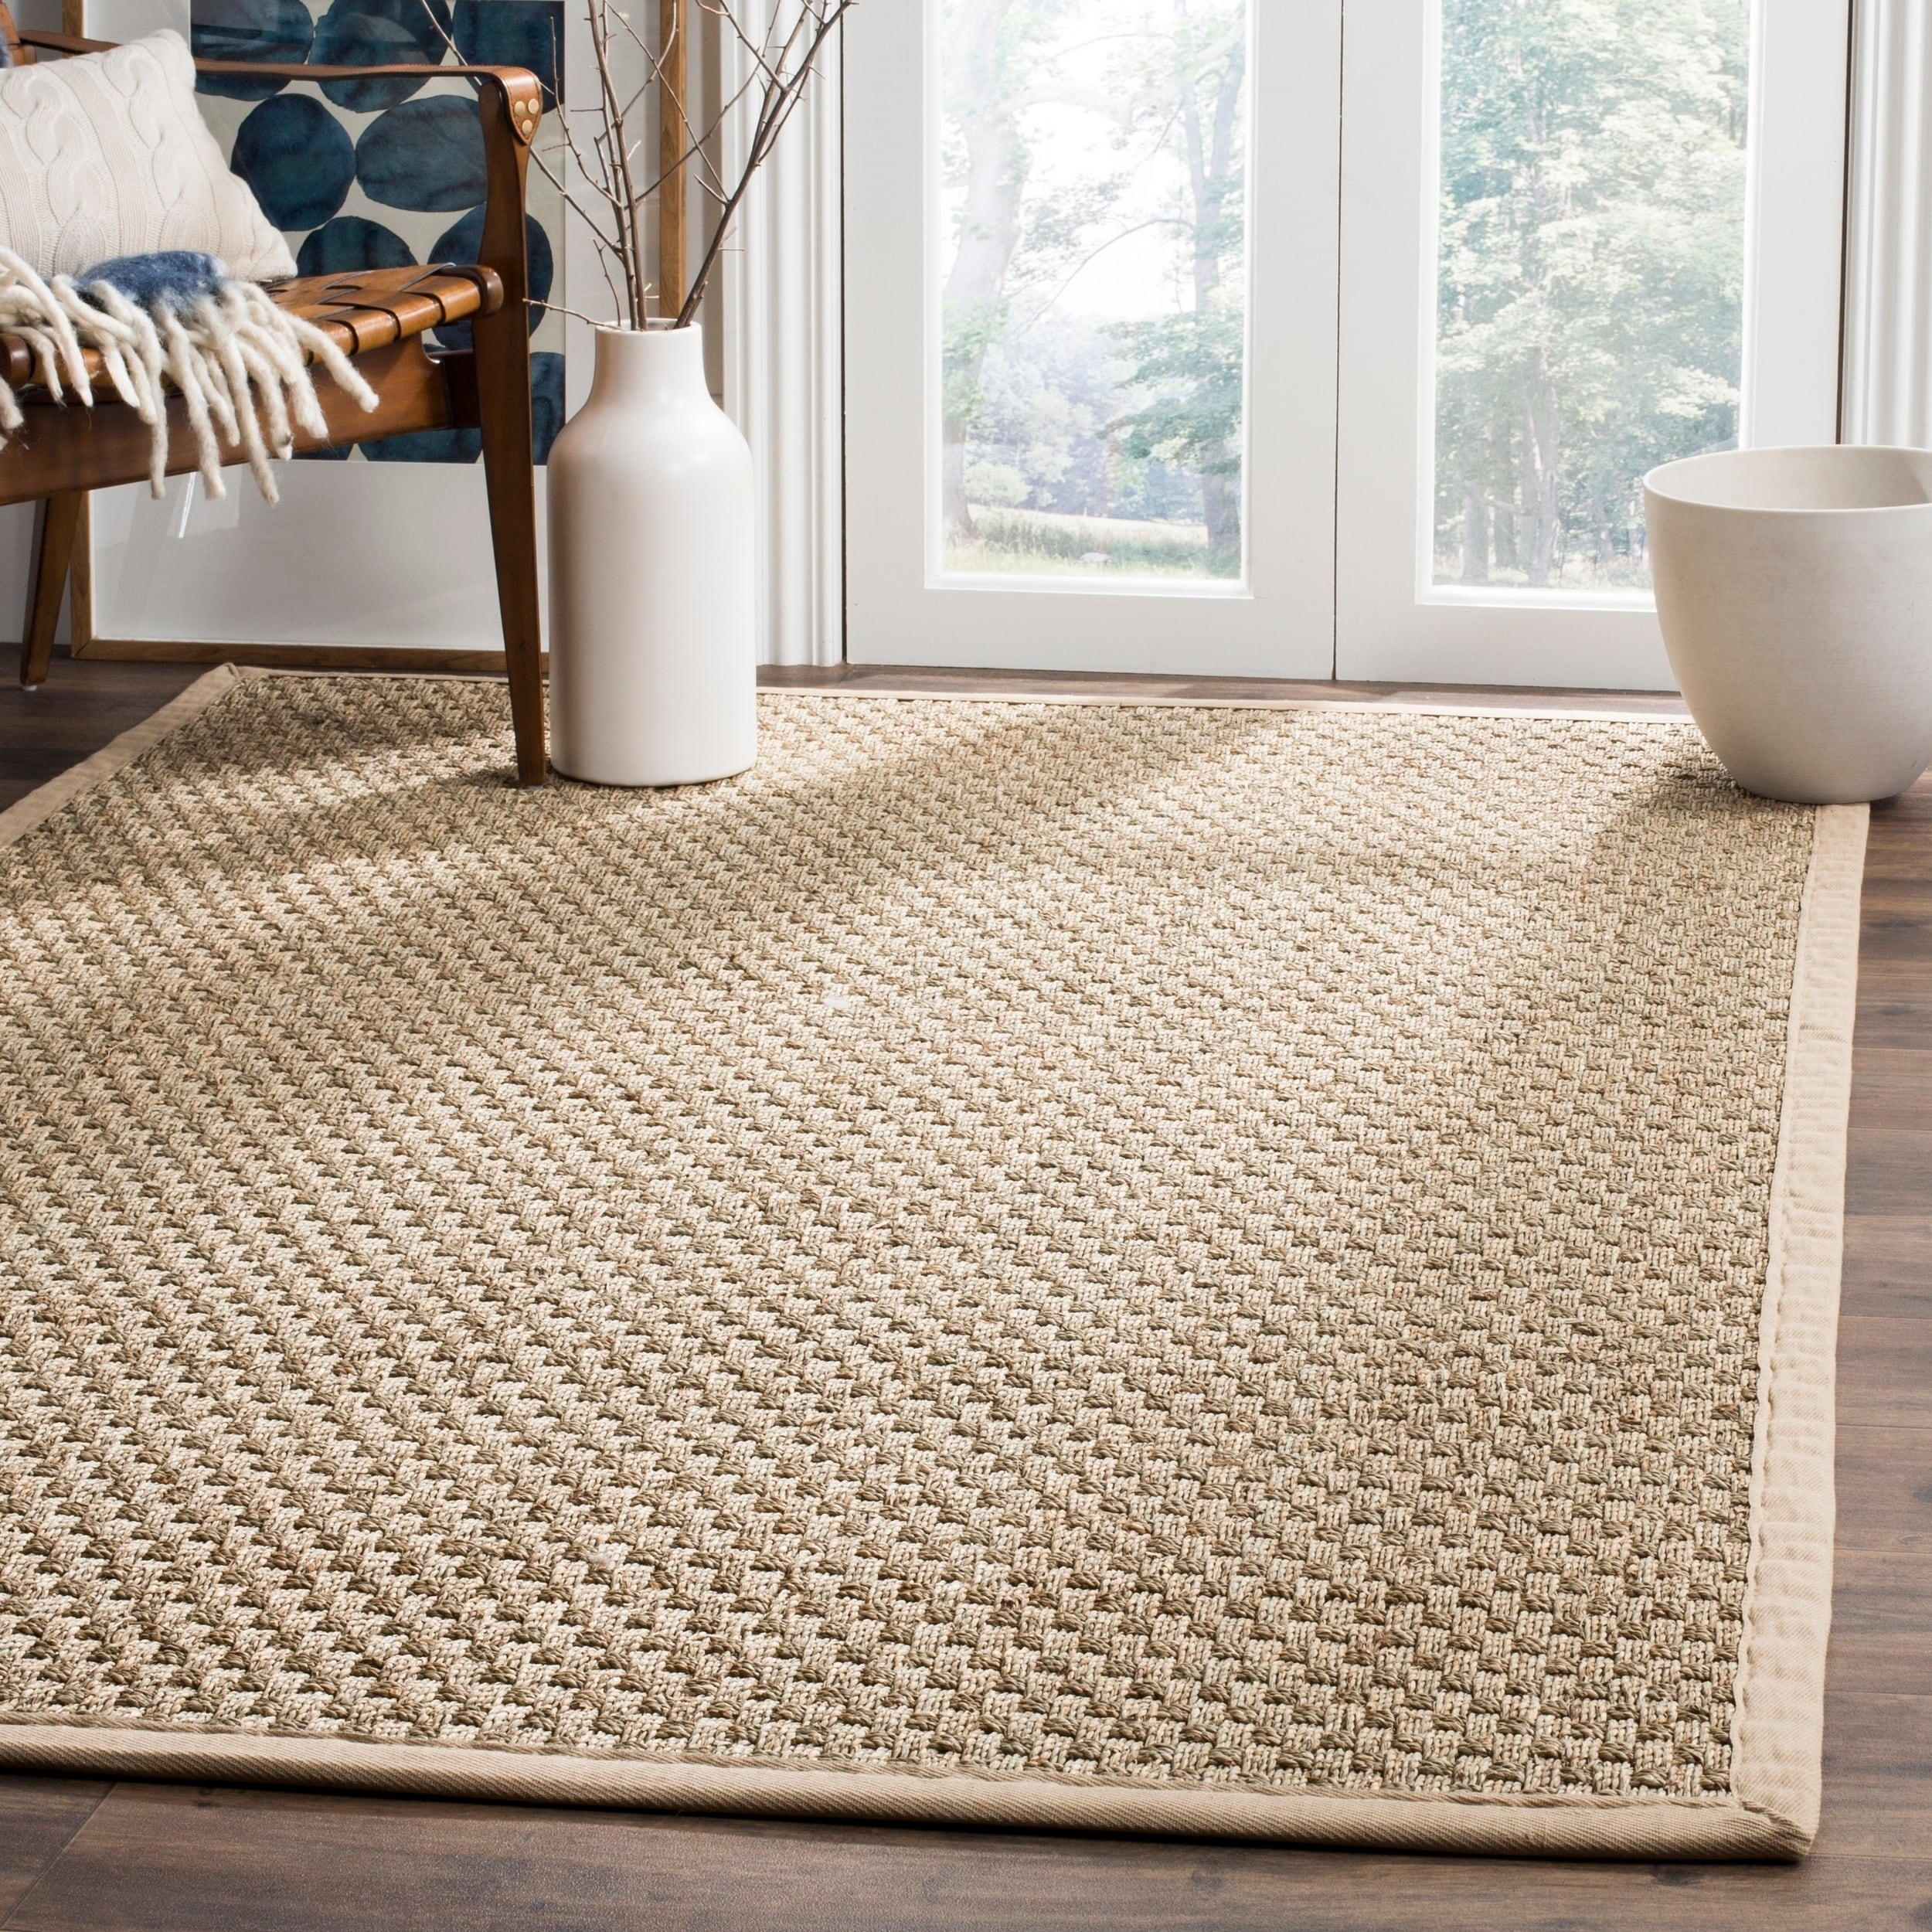 Shop safavieh natural beige seagrass area rug 9 x 12 on sale free shipping today overstock com 4256750